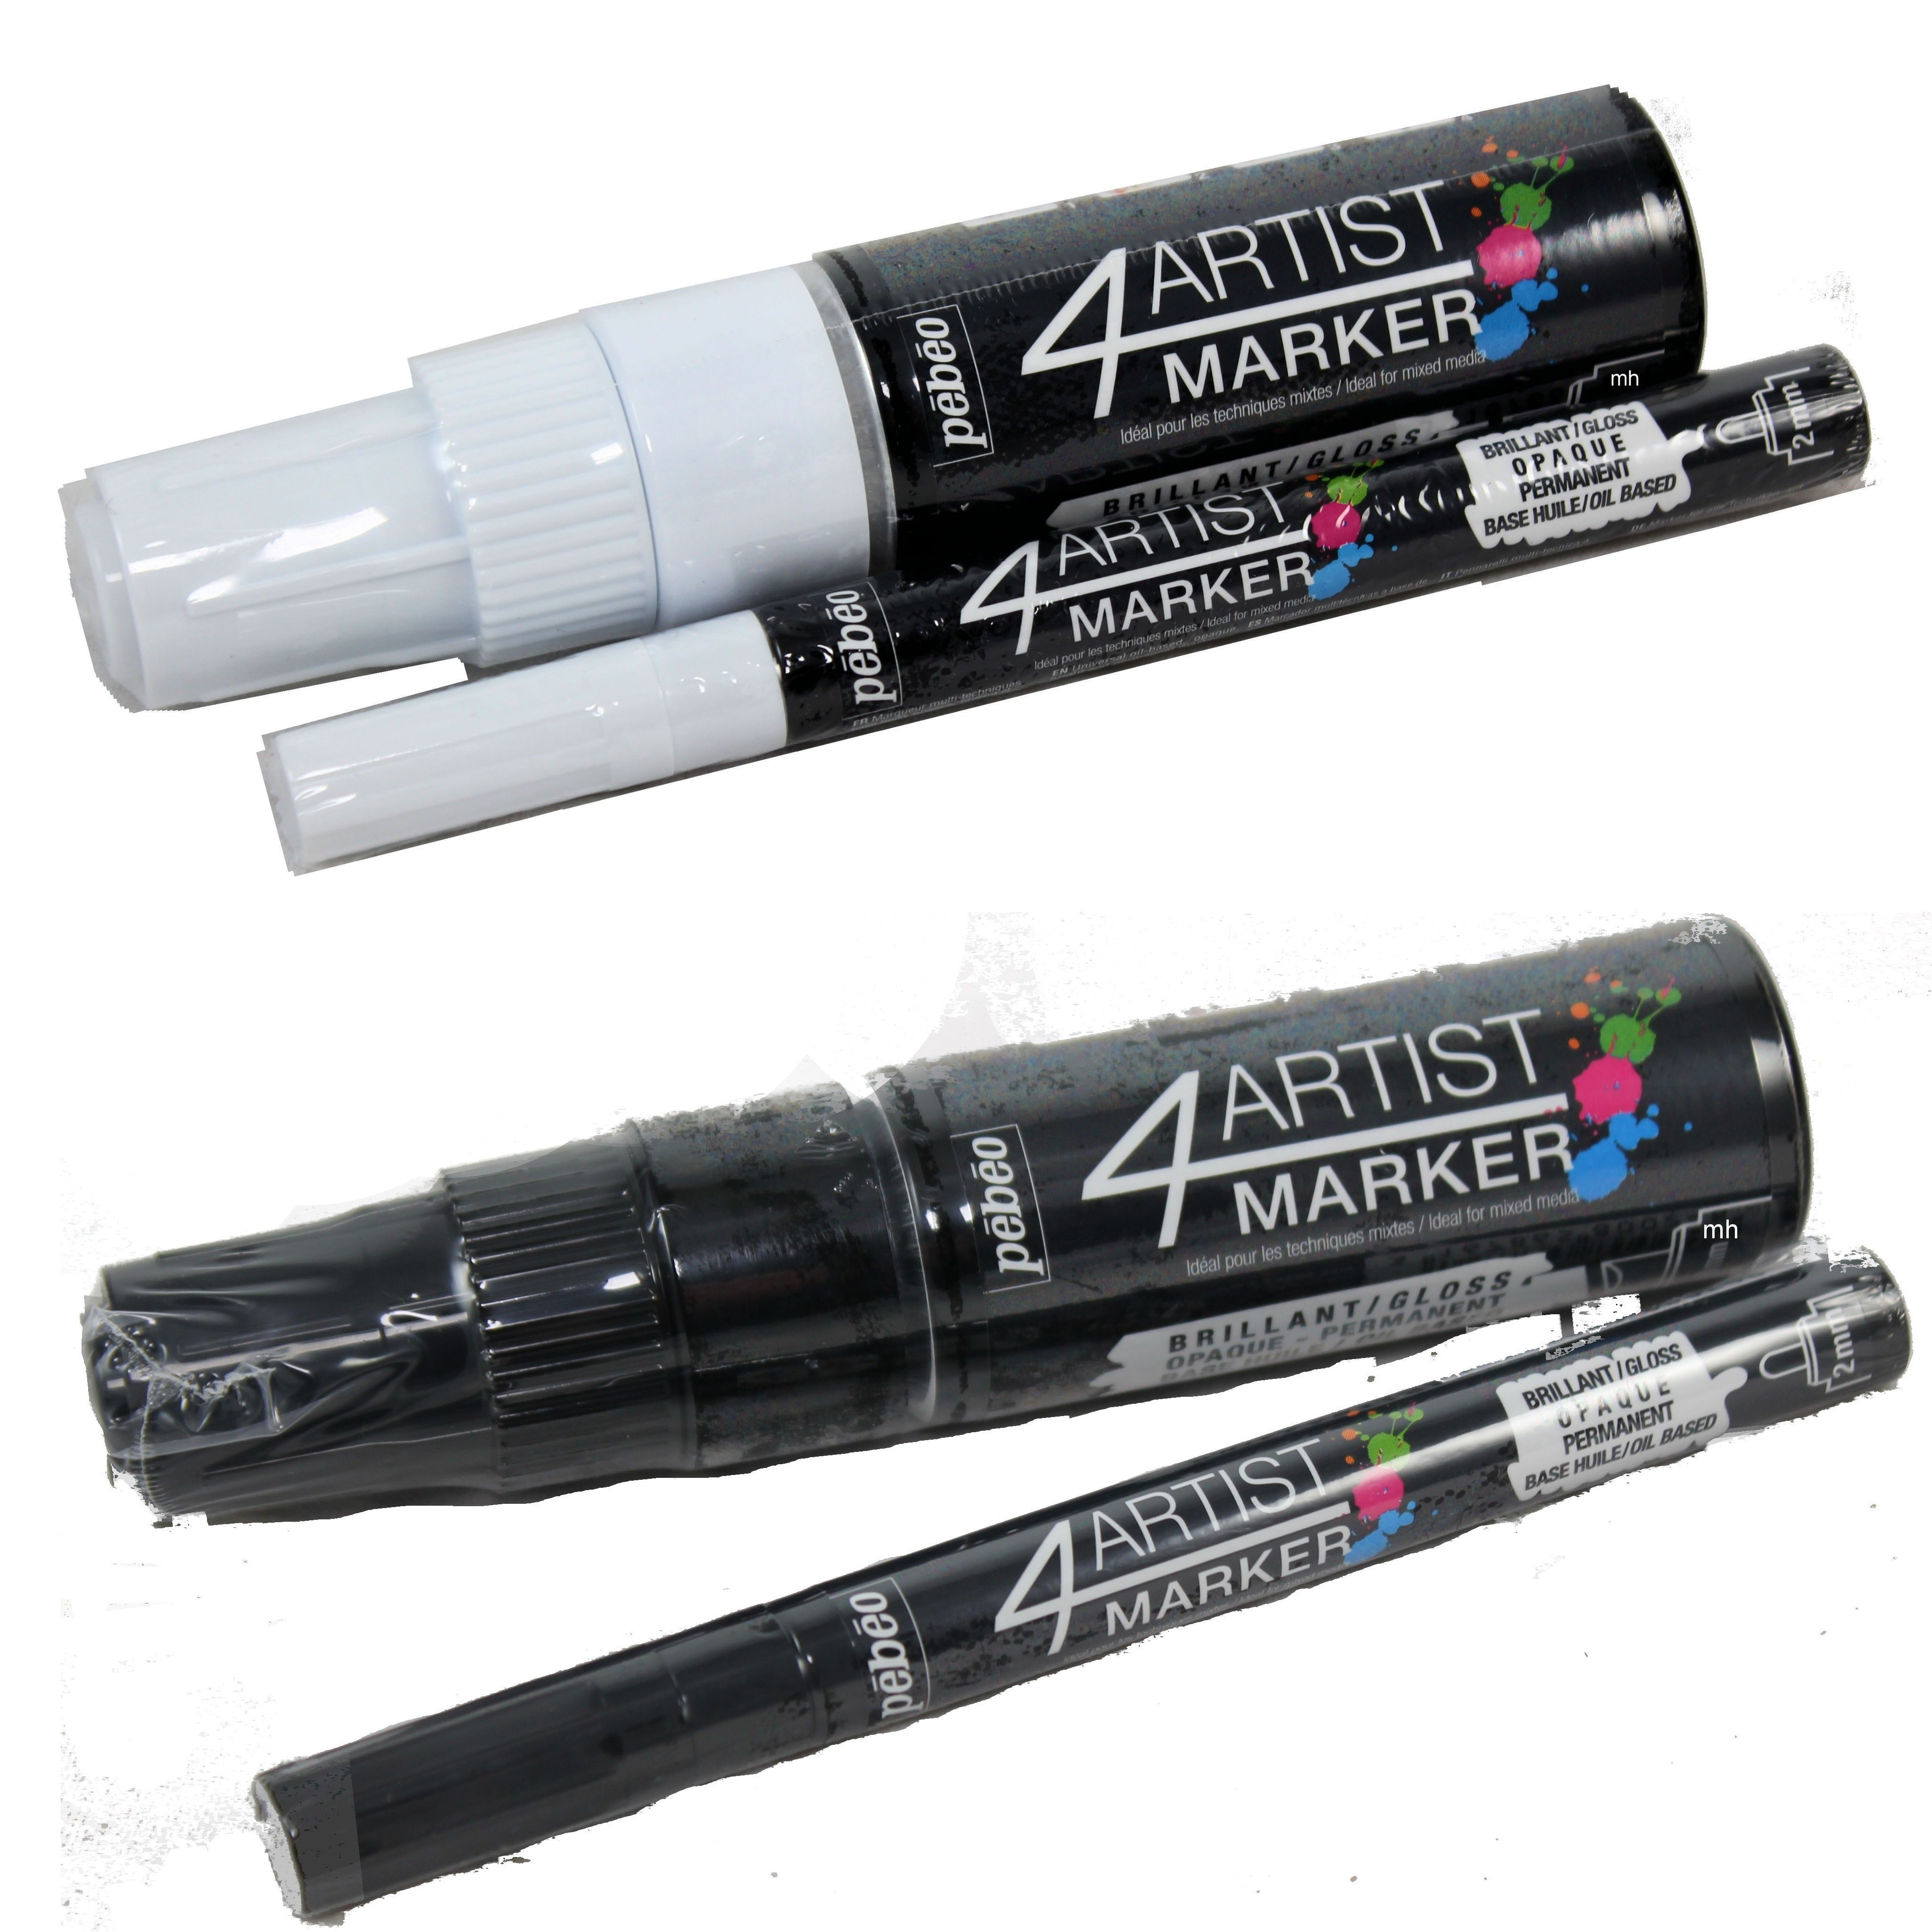 Pebeo 4Artist Marker Oil Based Paint Pens Duo Twin Sets Chisel /& Round